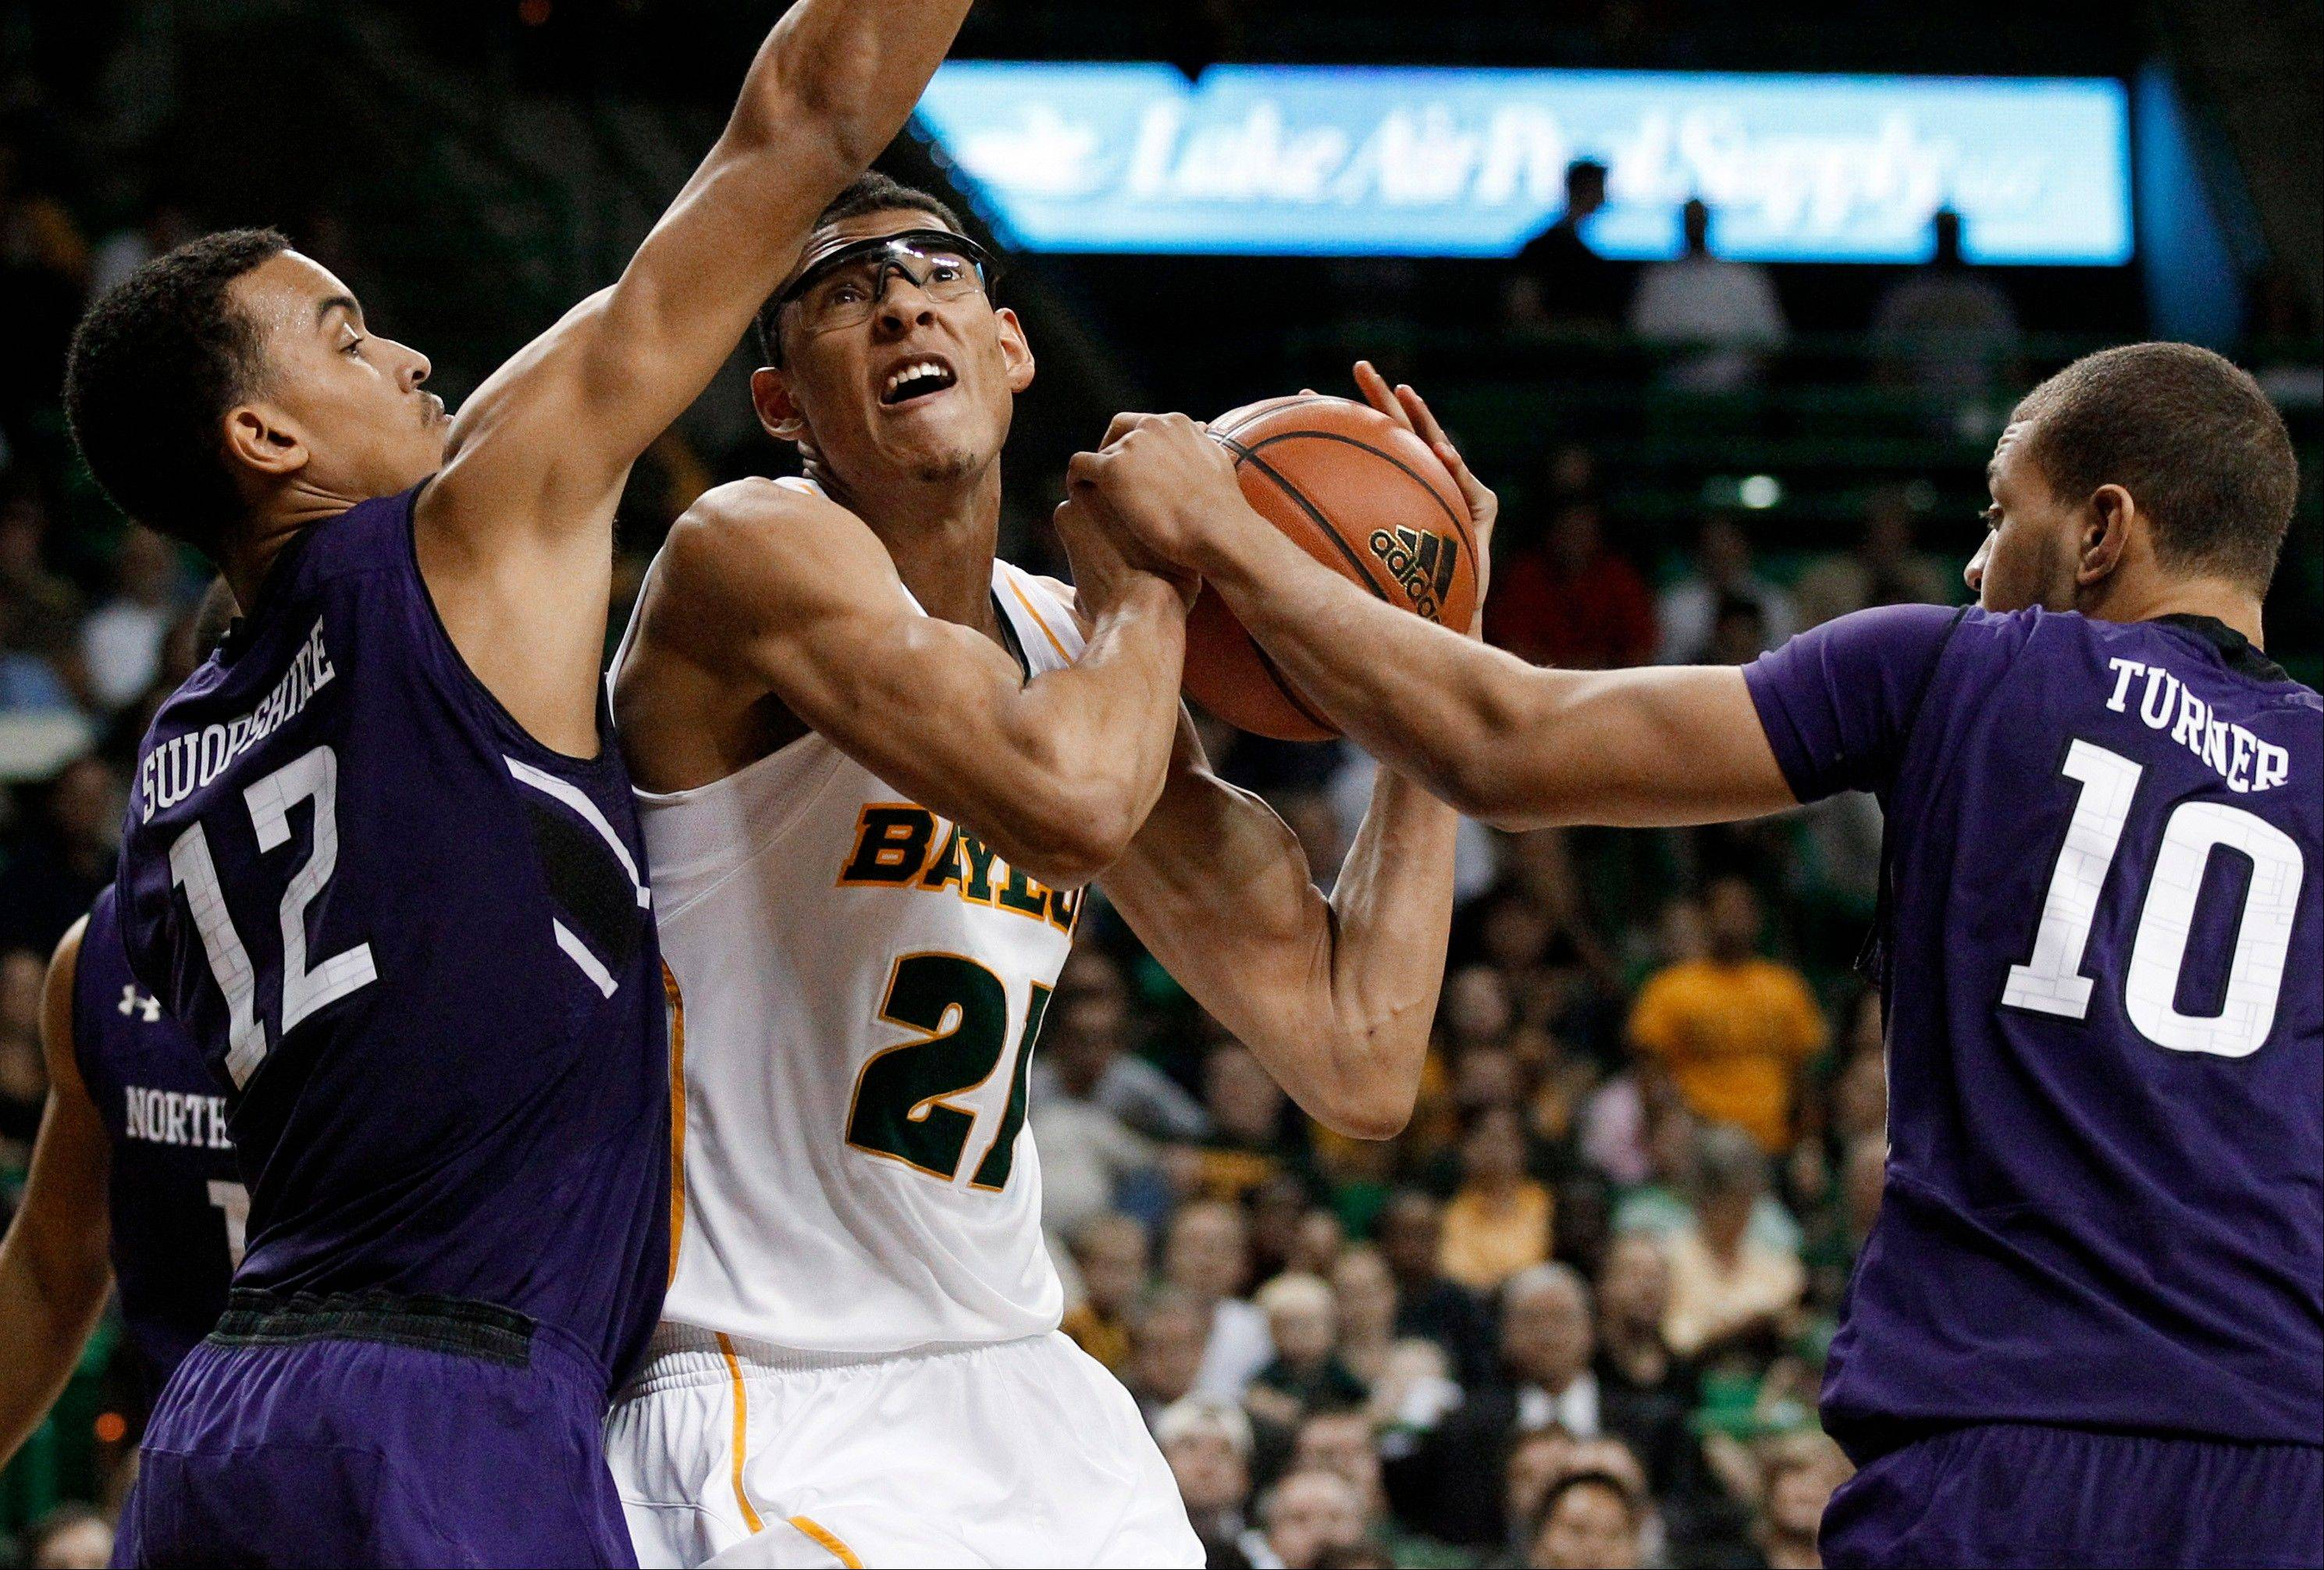 Northwestern�s Jared Swopshire (12) and Mike Turner (10) combine to stop a drive to the basket by Baylor�s Isaiah Austin (21) in the second half Tuesday in Waco, Texas. Northwestern defeated Baylor 74-70.